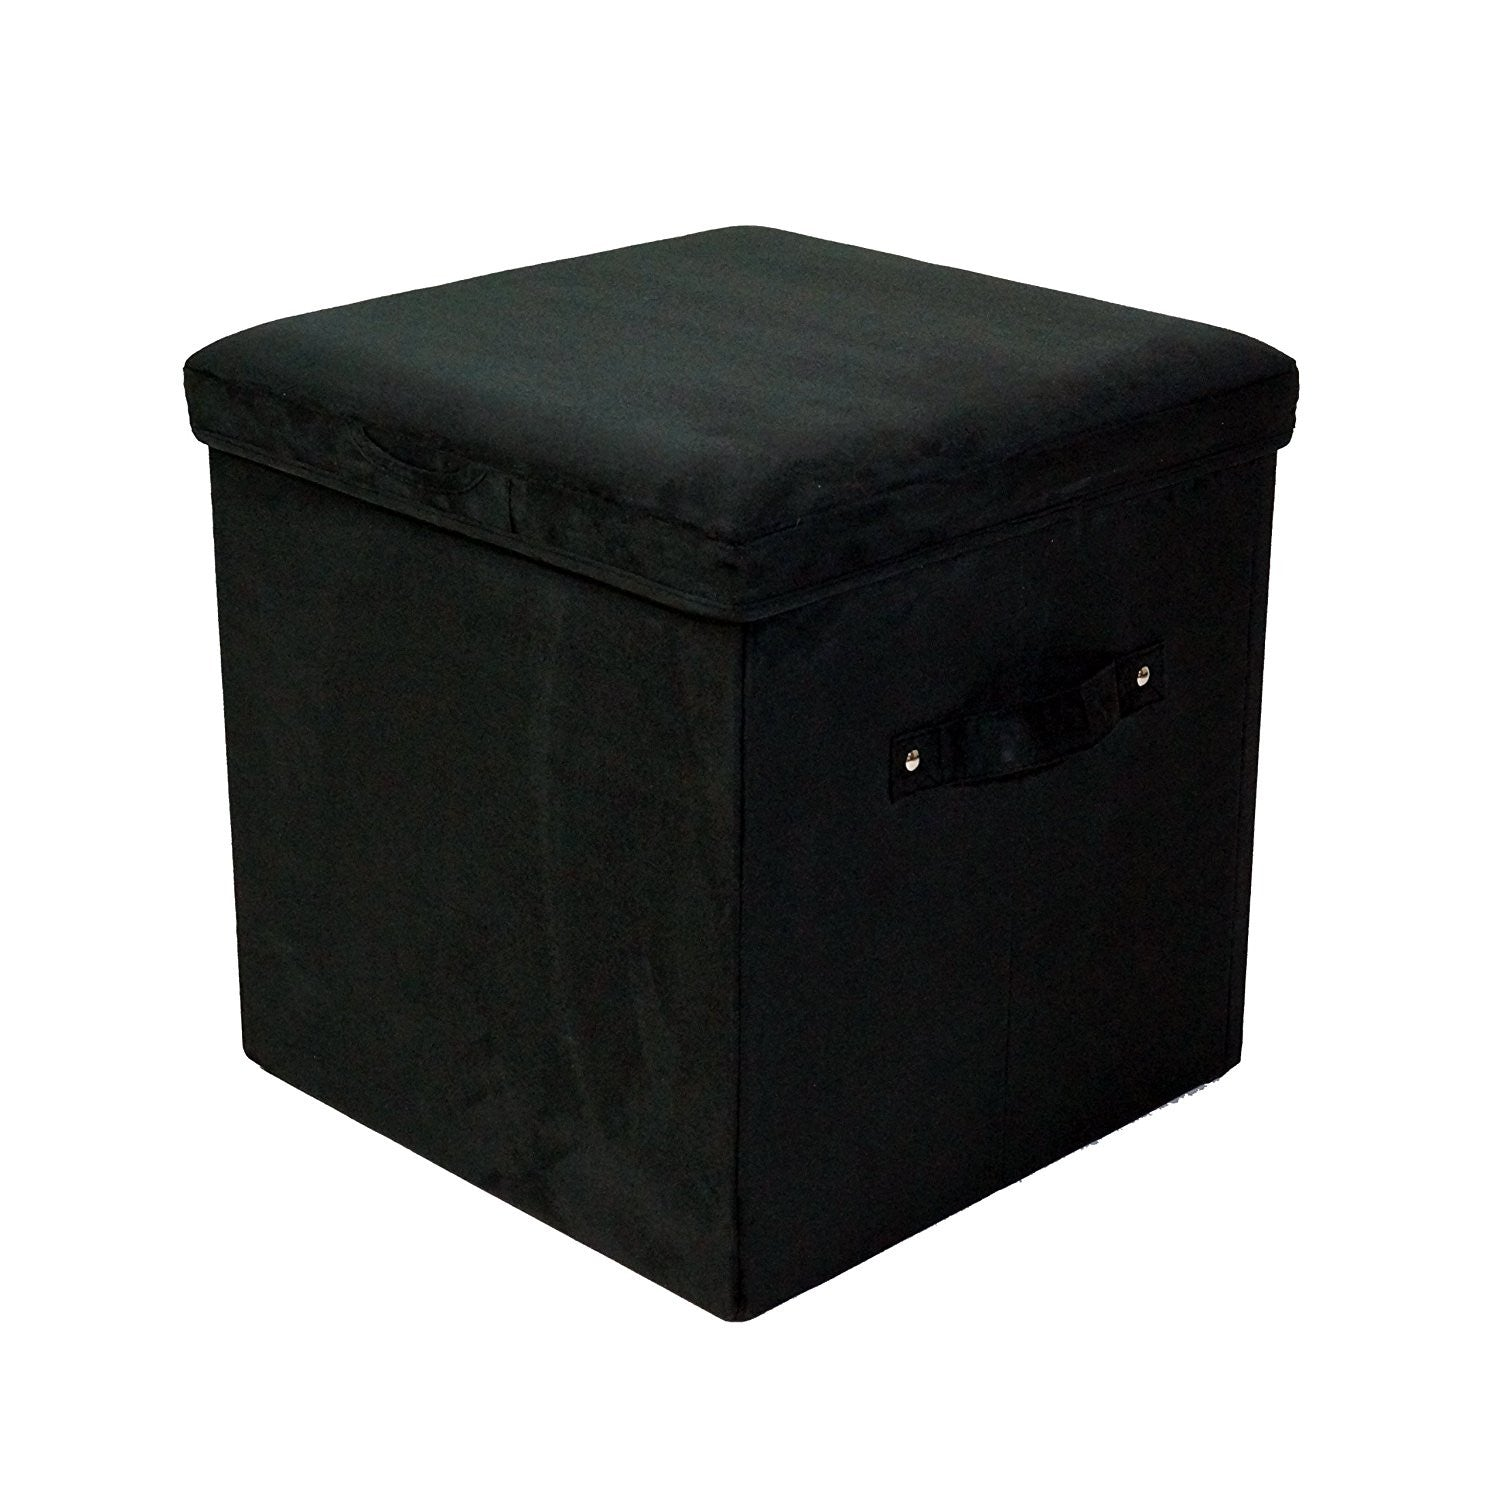 Casual Home Seat Pad Folding Storage Ottoman. Micro Suede Cover-Black - 112-  sc 1 st  HipBeds.com & Casual Home Seat Pad Folding Storage Ottoman. Micro Suede Cover ...